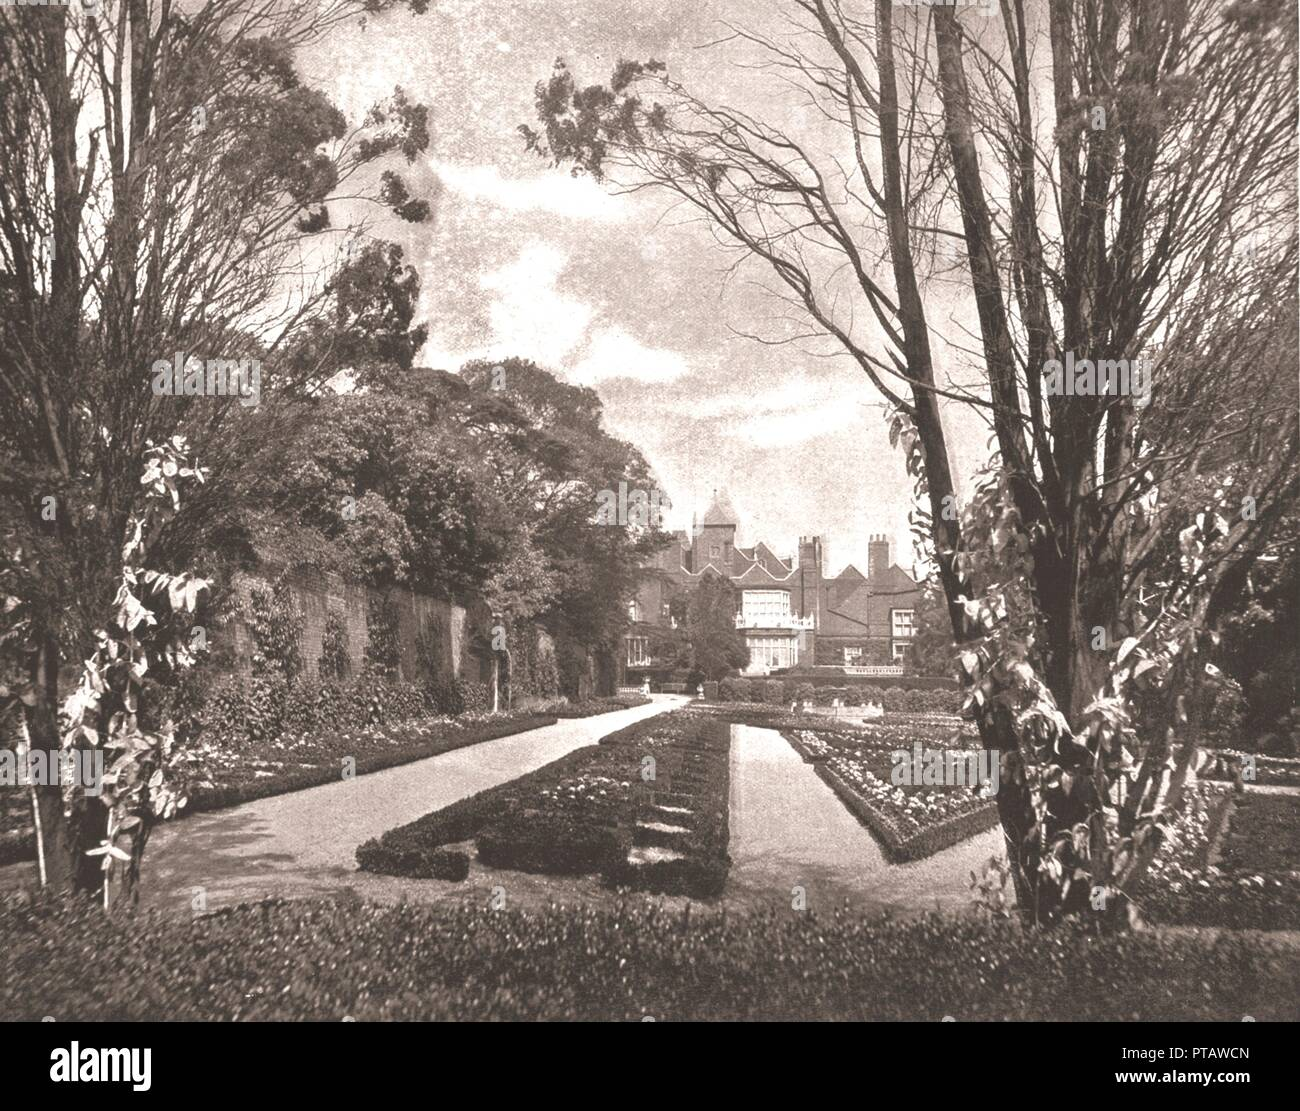 Holland House, Kensington, London, 1894. Jacobean mansion, built in 1606, held by the Earls of Holland and the Fox family, and the scene of salons and society parties. From Beautiful Britain; views of our stately homes. [The Werner Company of Chicago, 1894] - Stock Image